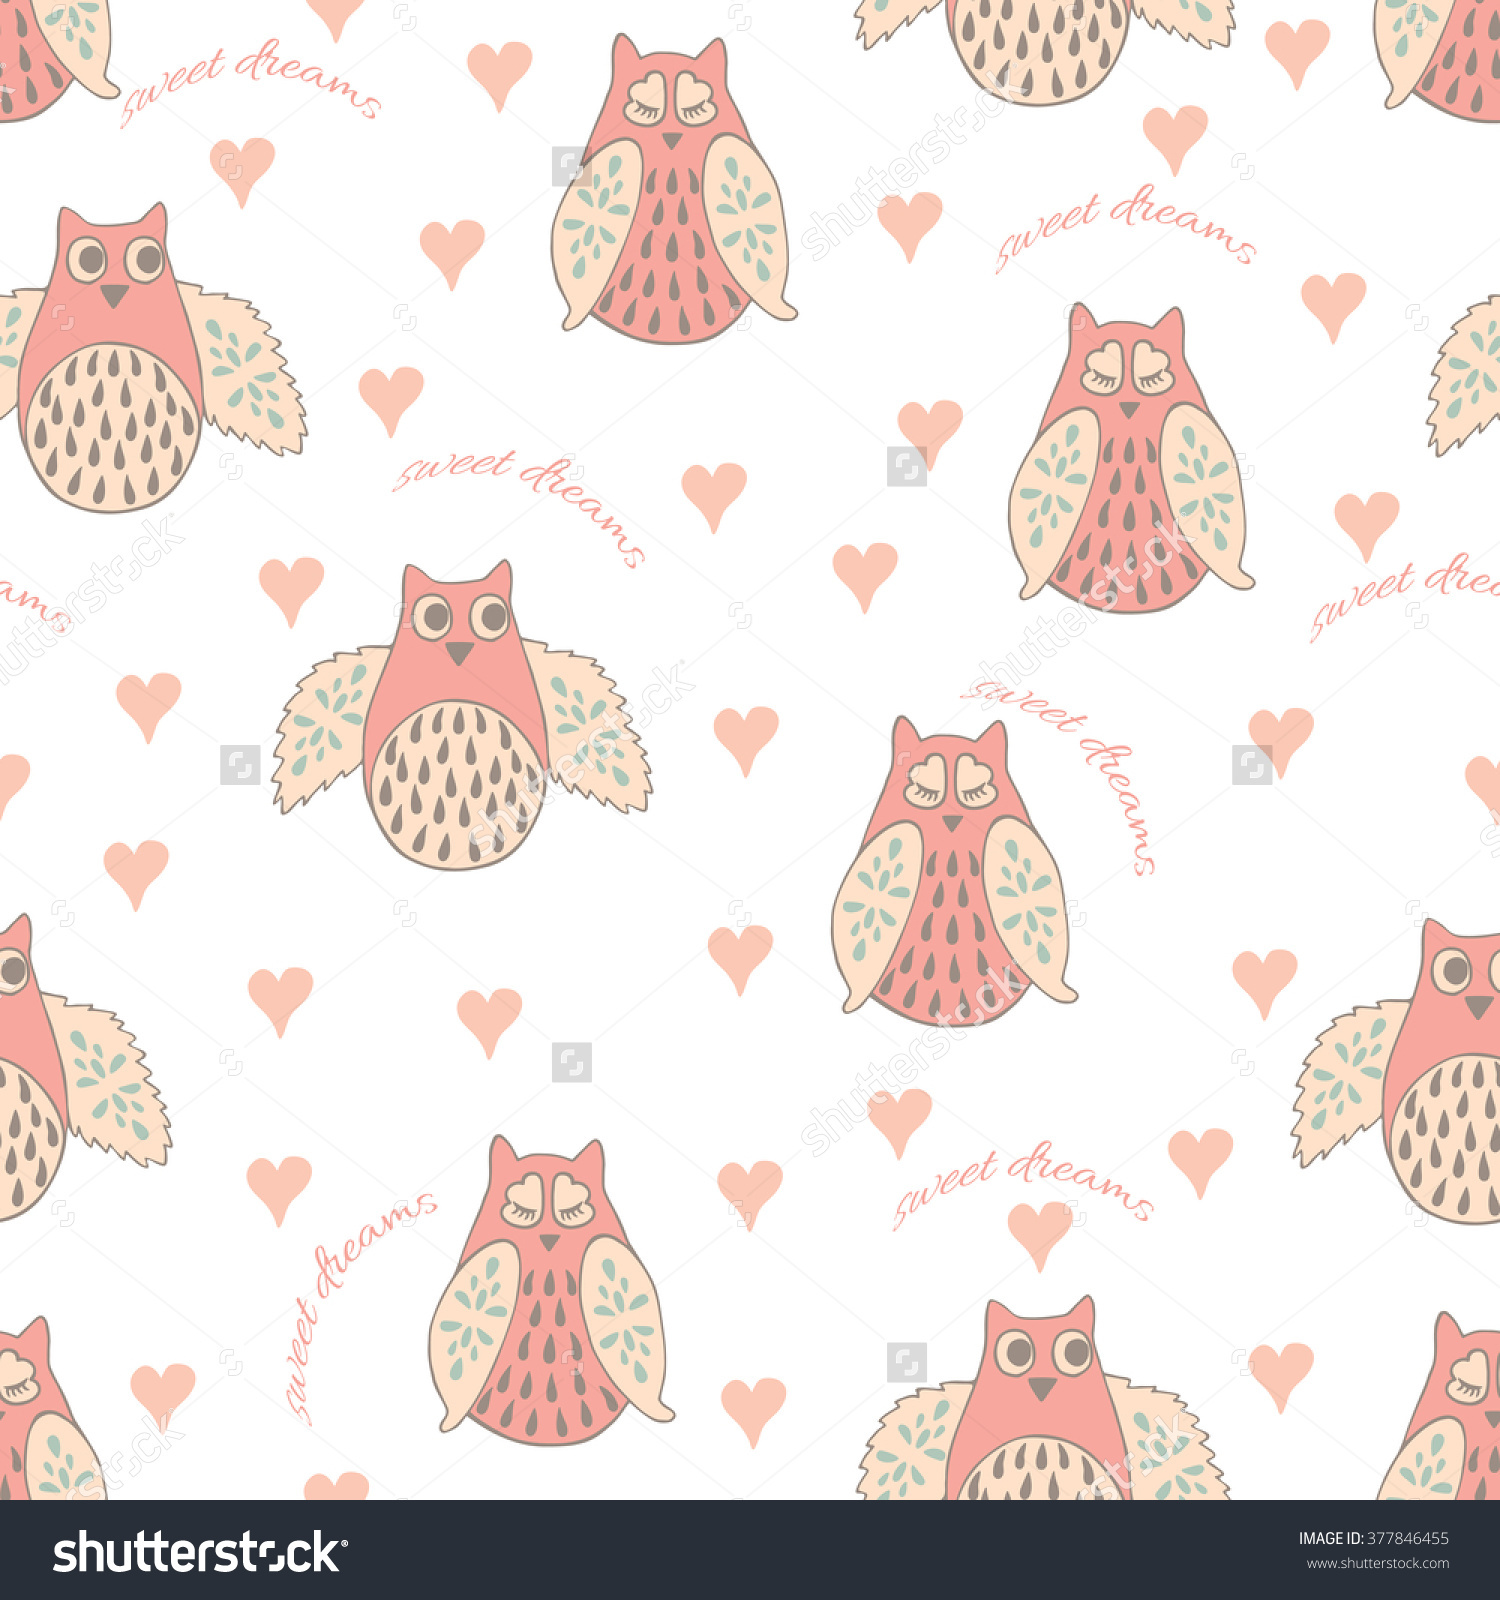 Seamless Pattern With Pastel Hand Drawn Cute Owls And Hearts.